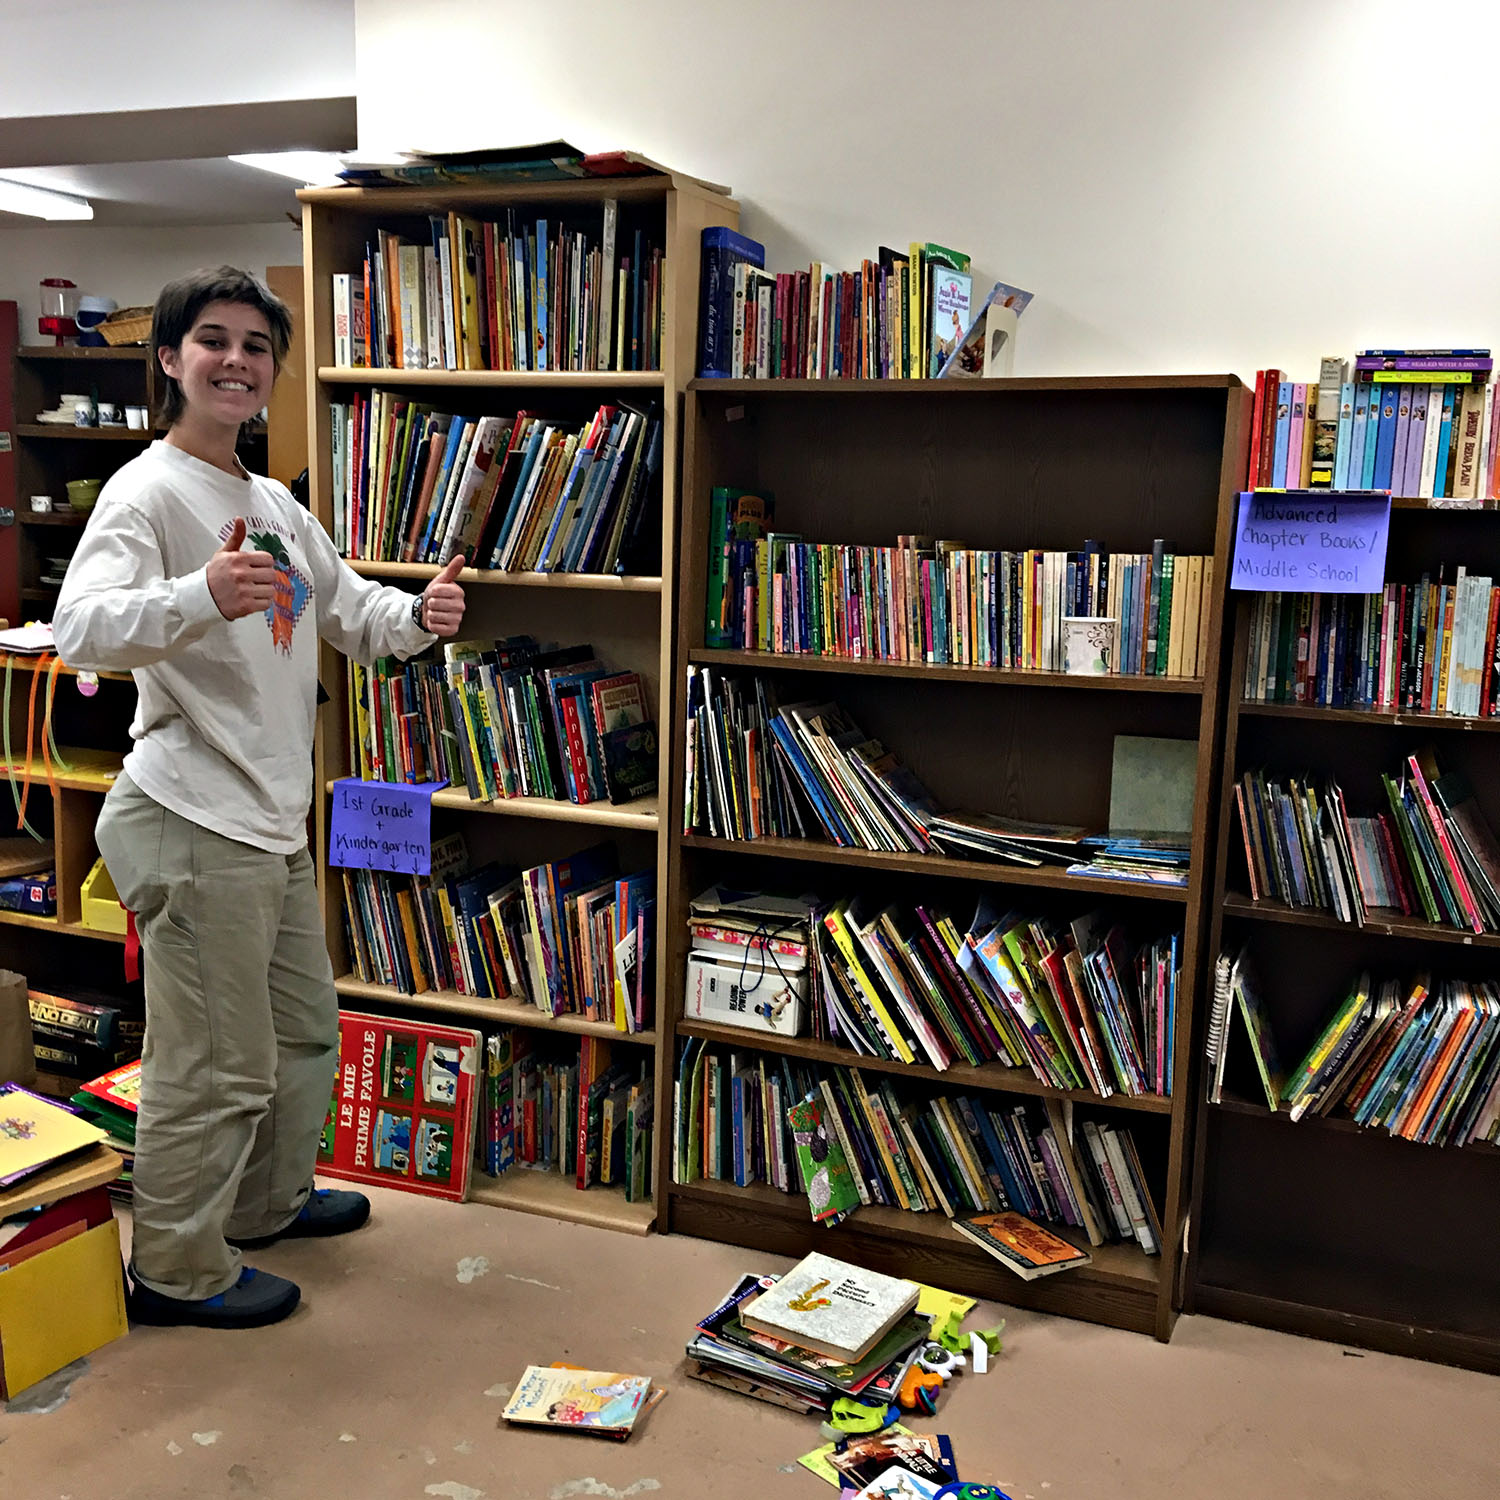 A Bard student volunteer organizes the books in the community closet at the Red Hook Community Center. January 21, 2019.